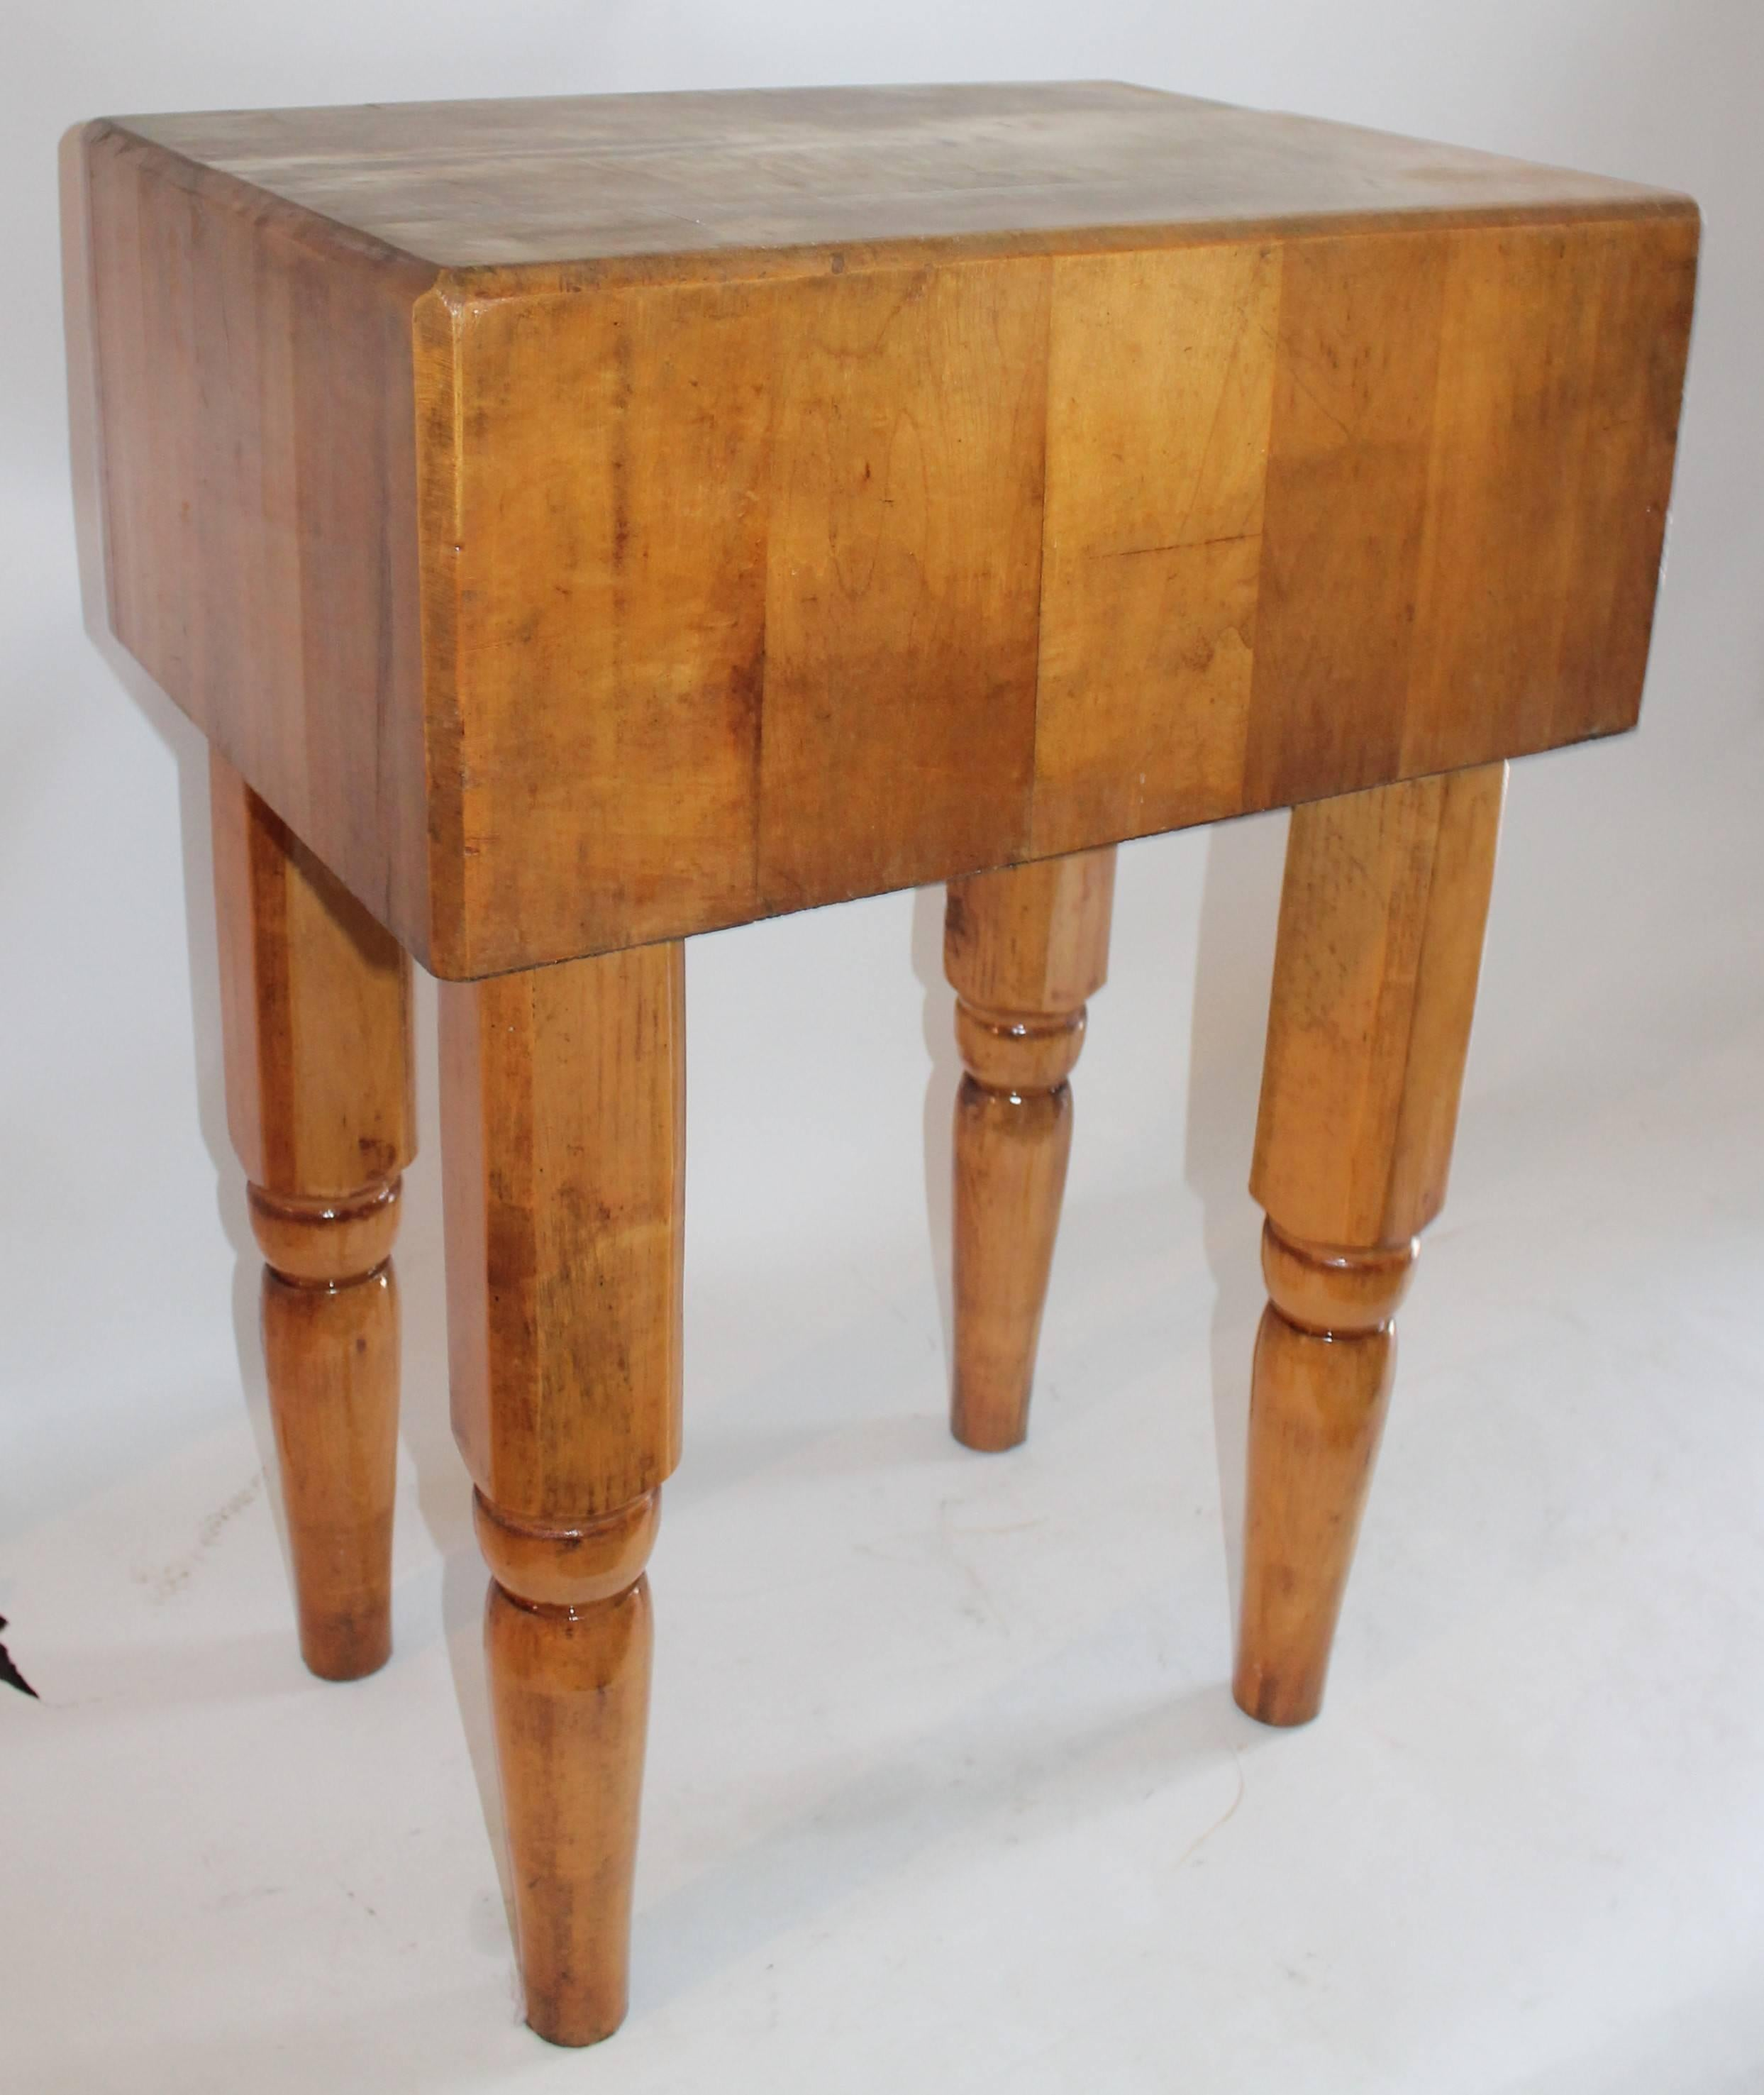 Early 20th Century Butcher Block Table In Maple And Pine. The Condition Is  Very Good